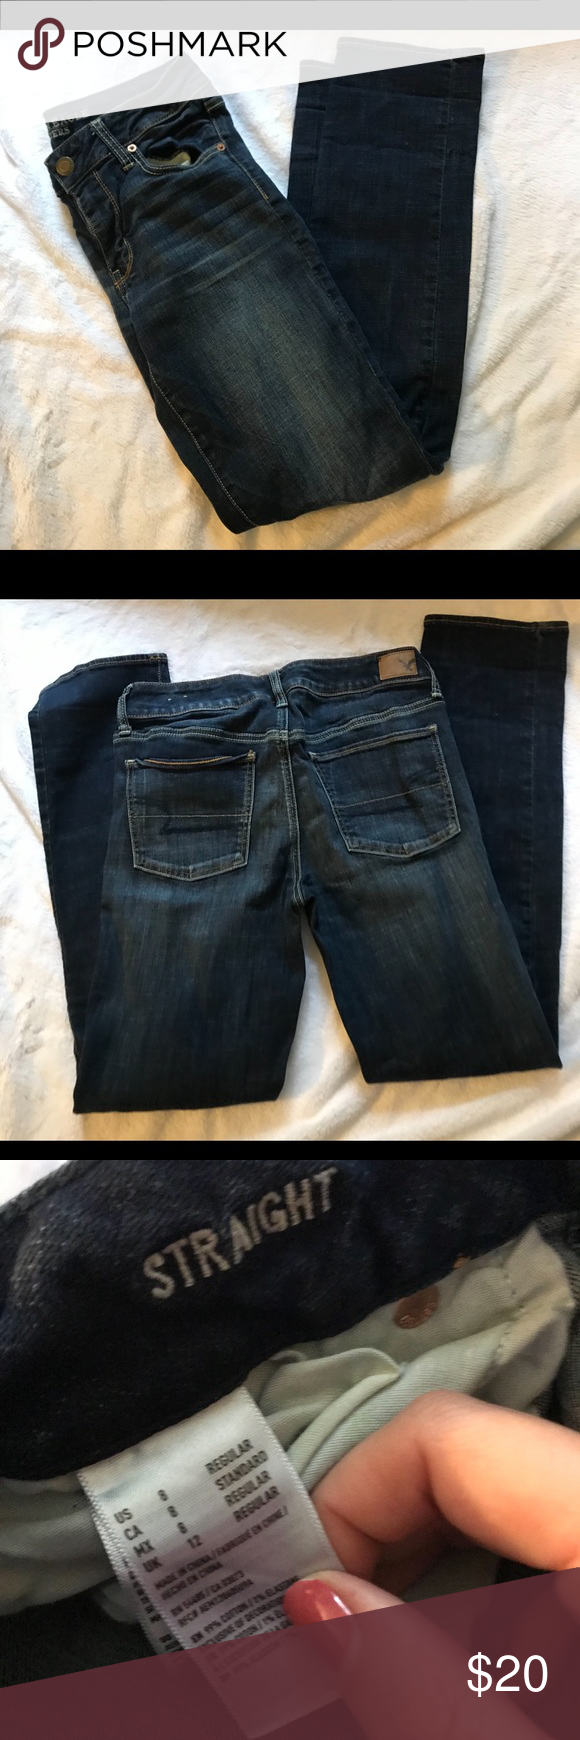 AEO Jeans American eagle outfitters jeans, Jeans, Aeo